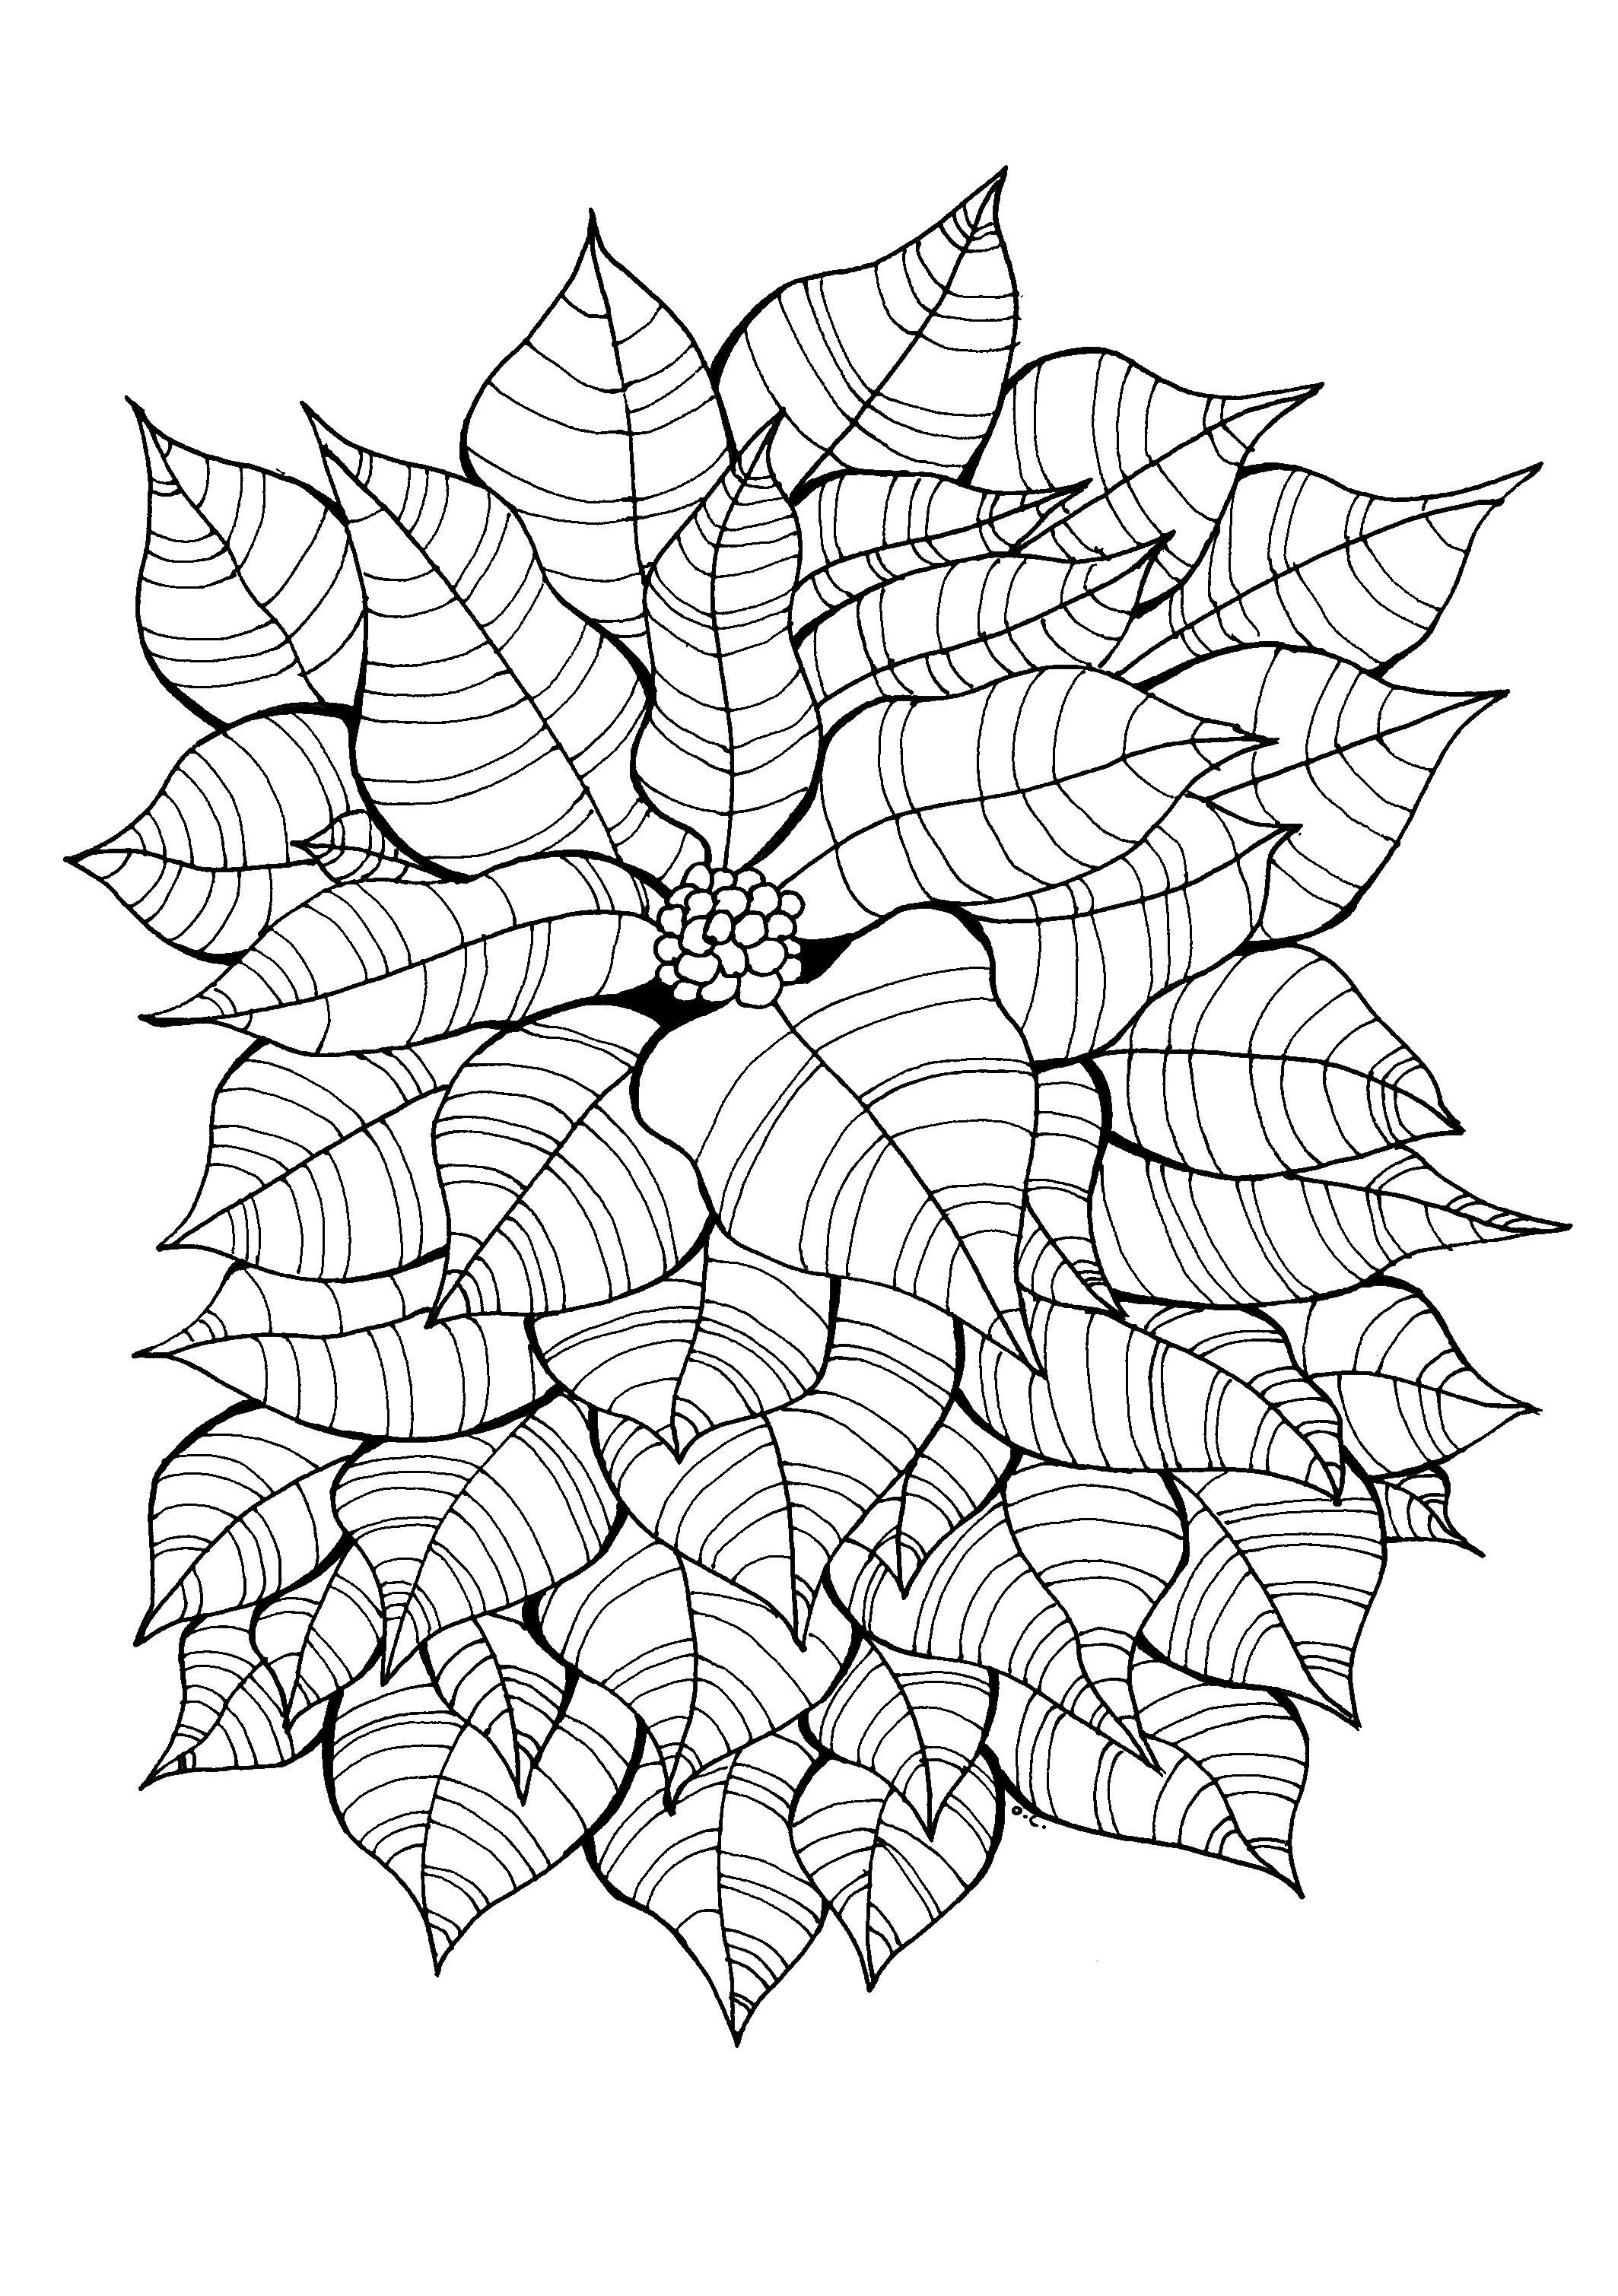 print - Simple Flower Coloring Pages